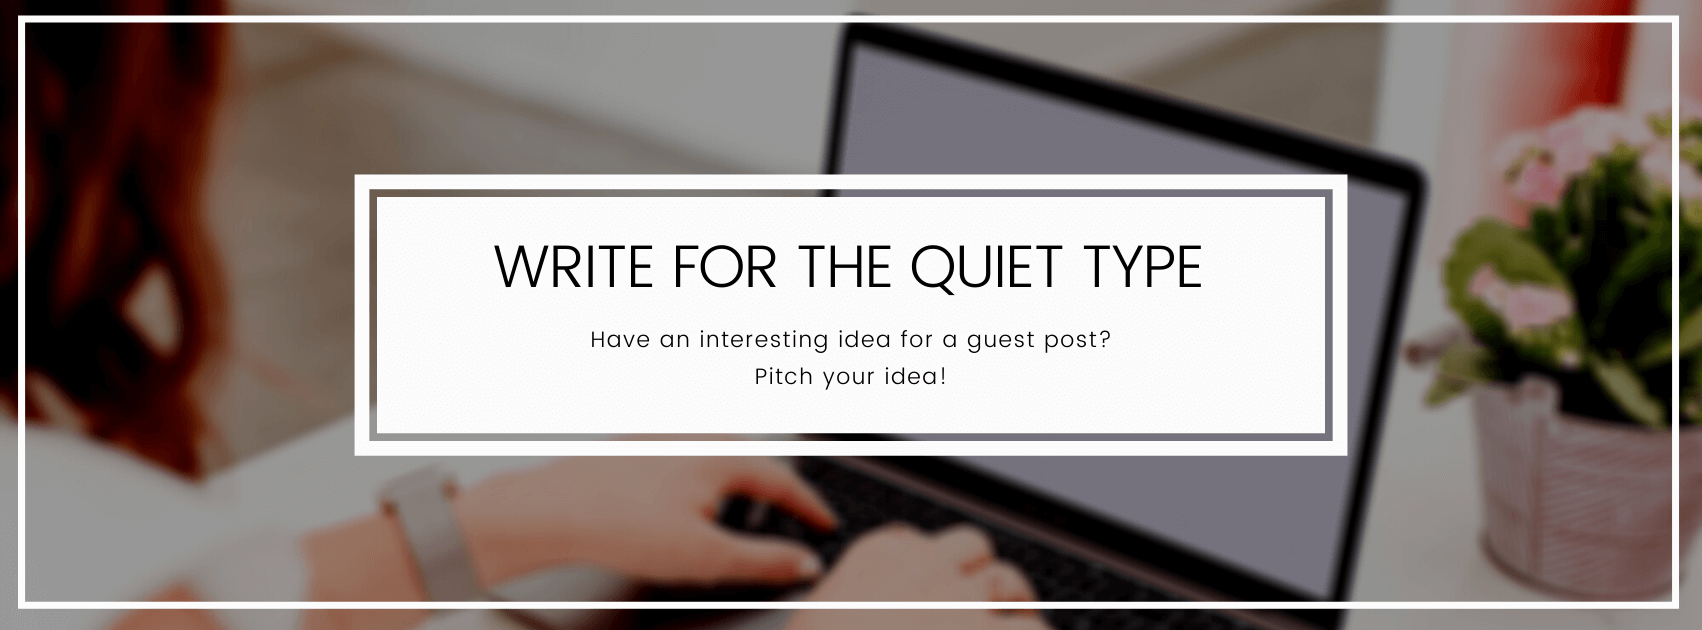 Have an interested idea for a guest post related to freelance writing, entrepreneurship, blogging, freelancing, or running an online business? Send your pitch to The Quiet Type!